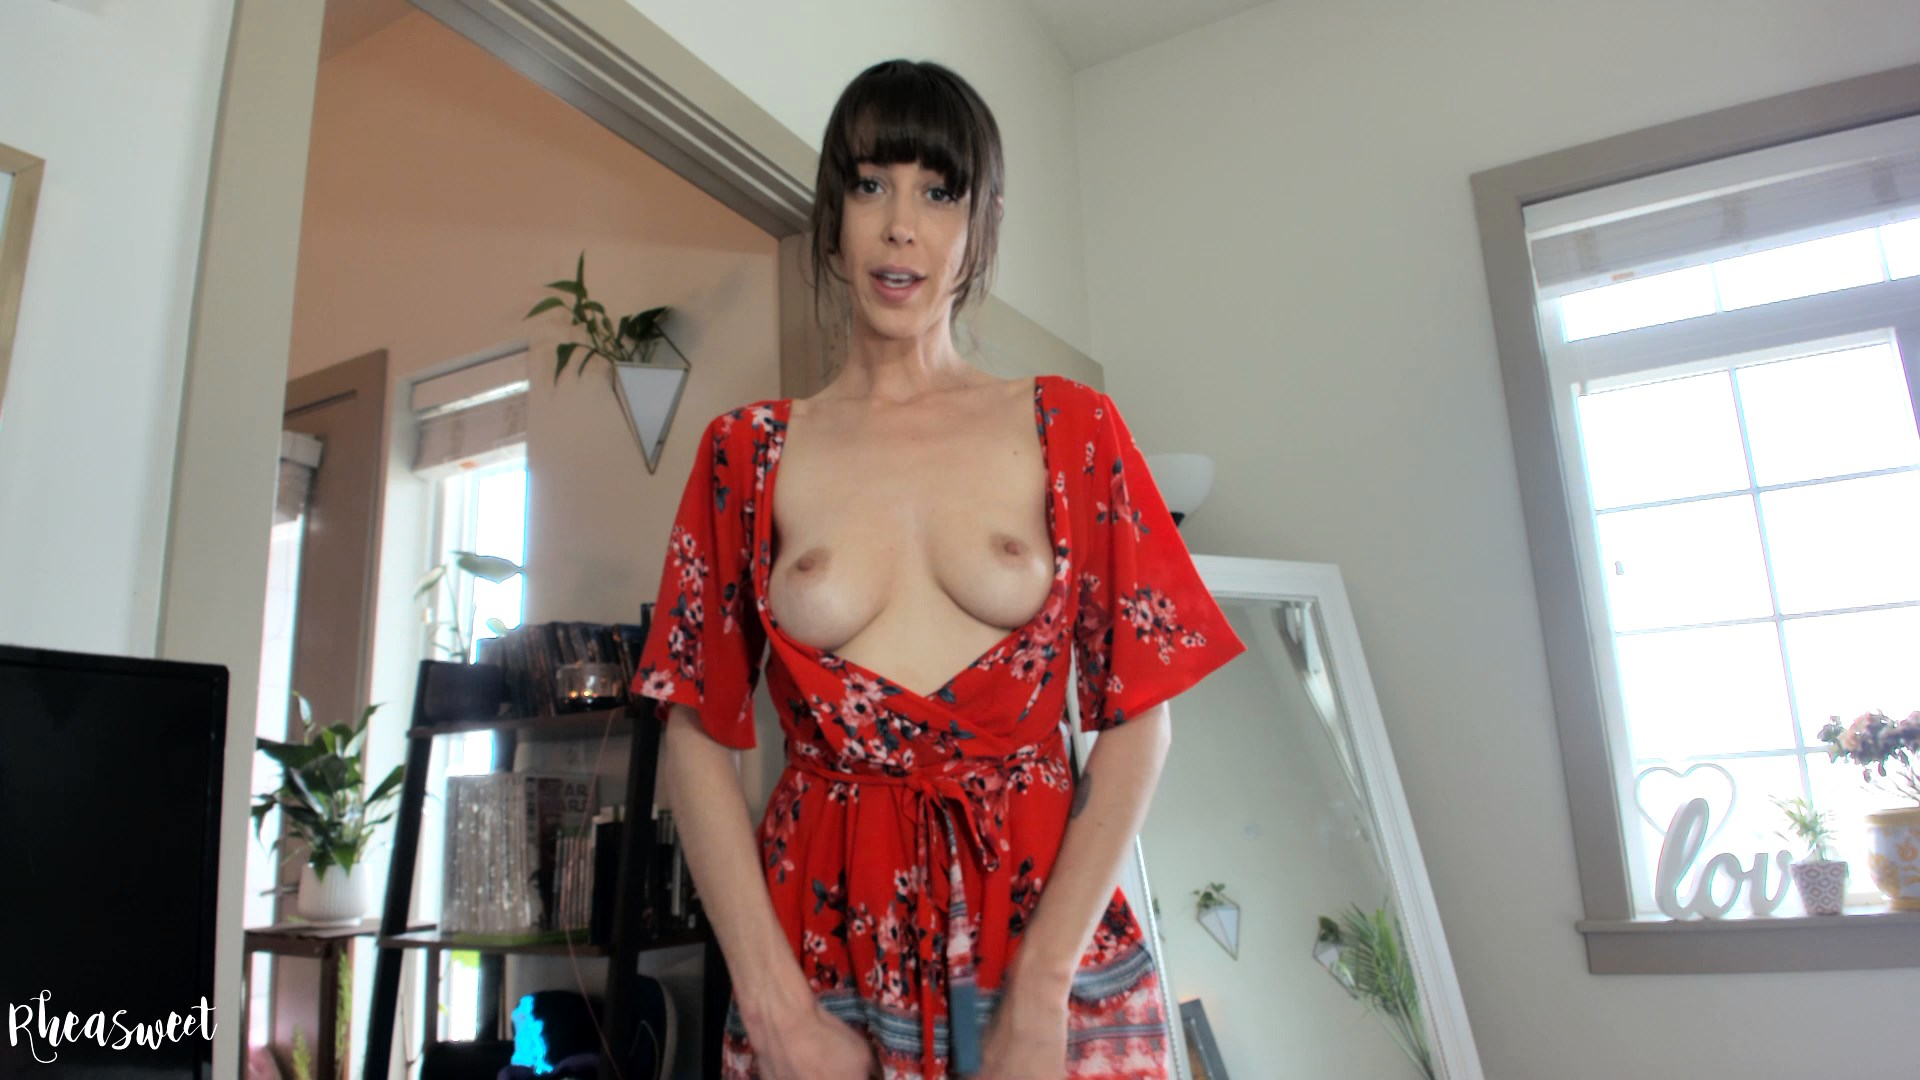 Rhea Sweet - Mommy finds your Porn